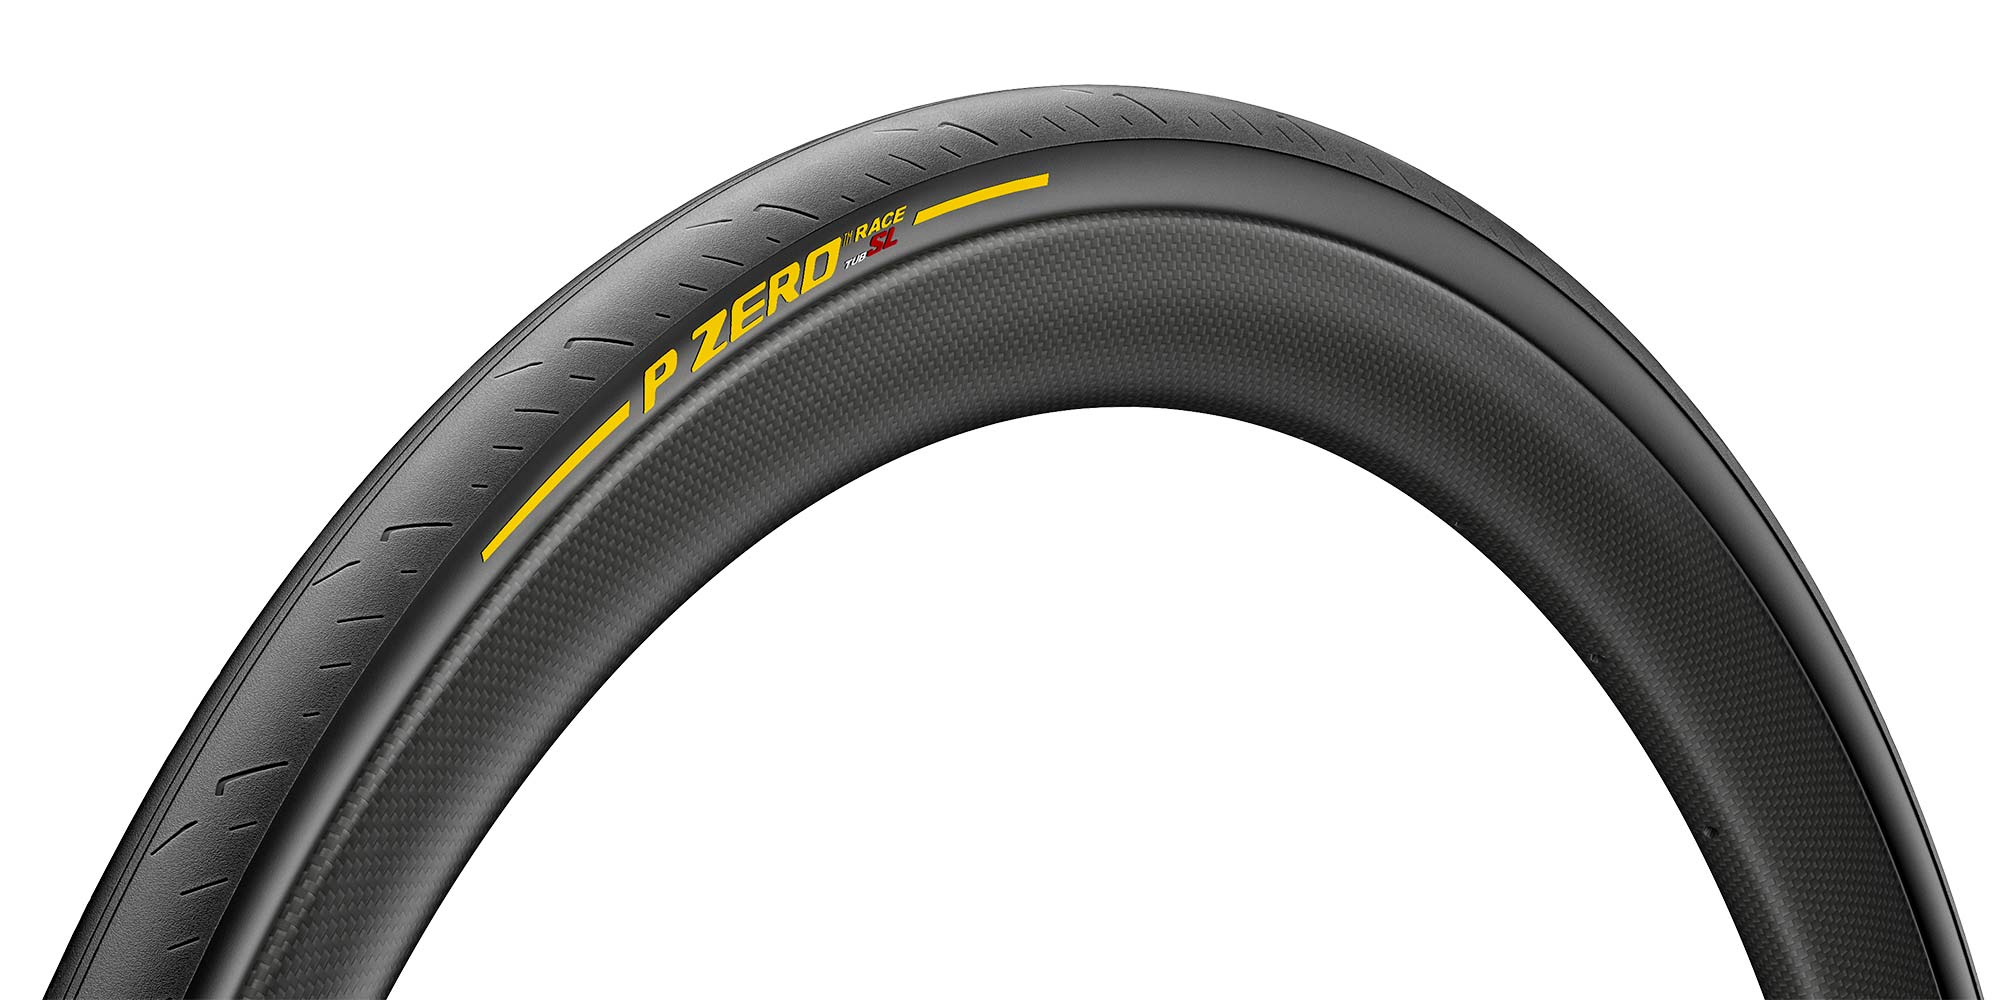 Pirelli P Zero Race Tub SL tubular road race tire